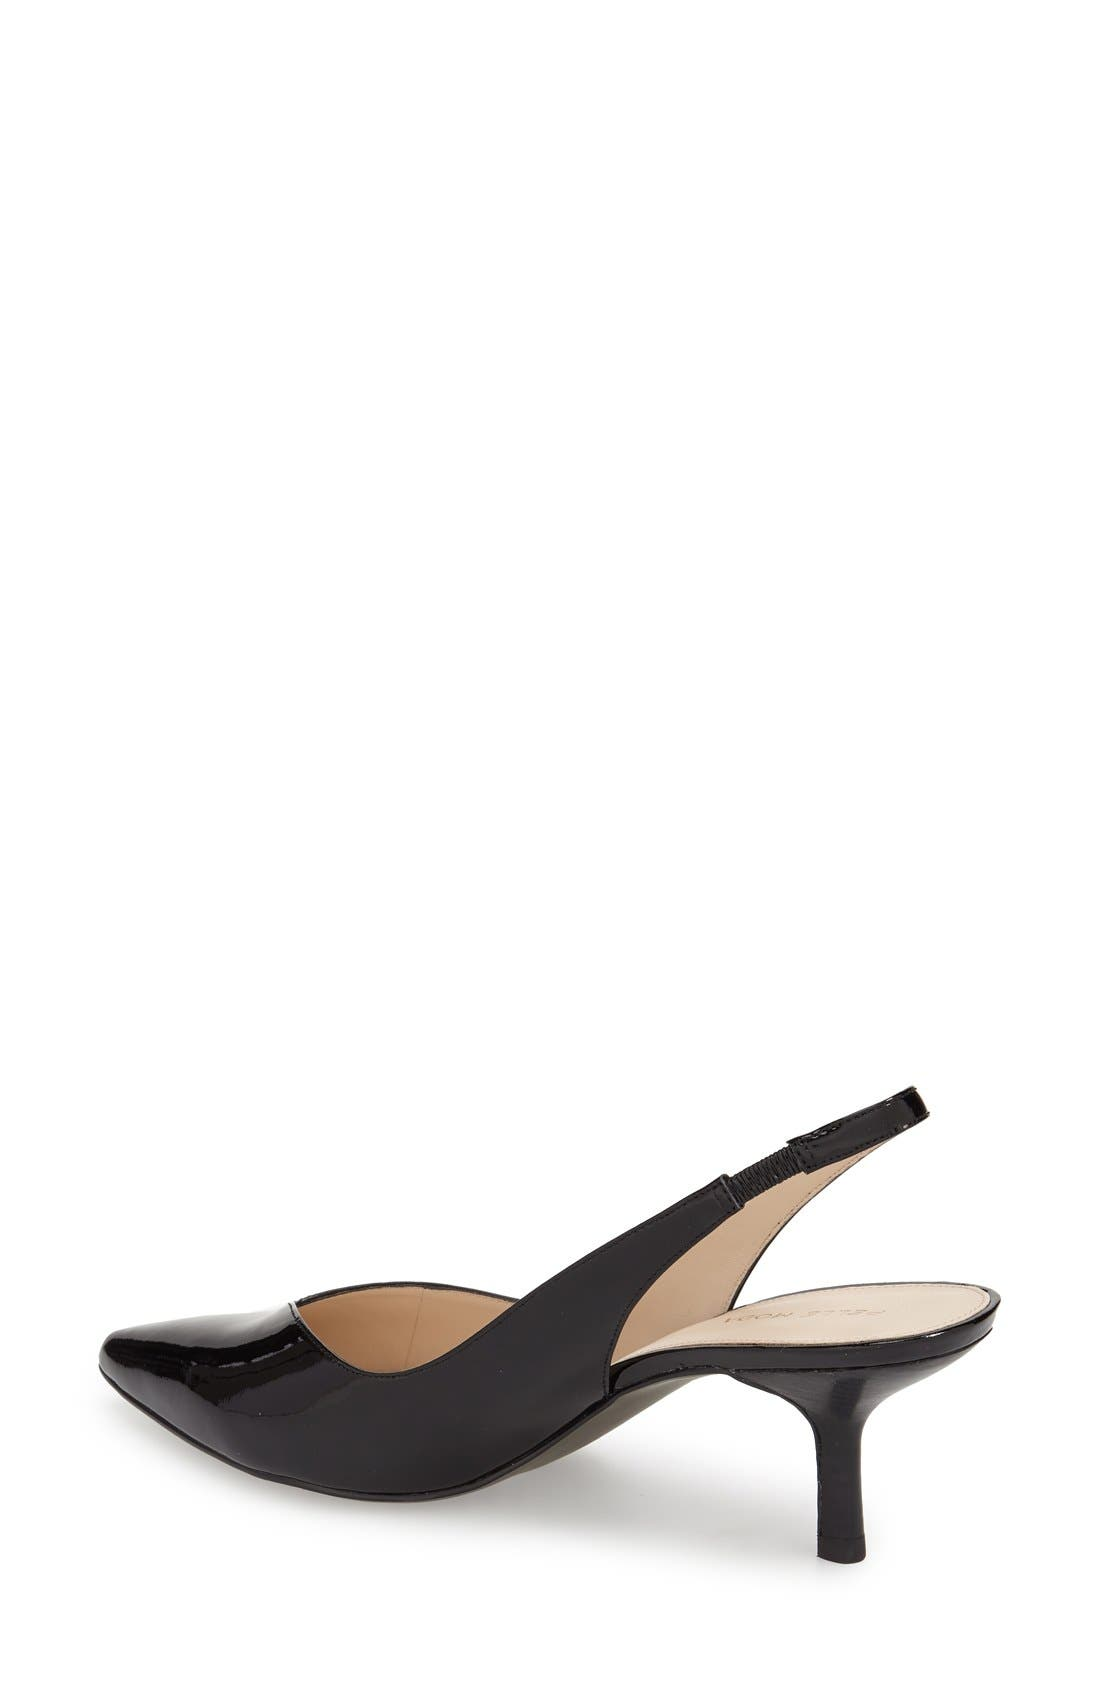 'Oasis' Slingback Pump,                             Alternate thumbnail 2, color,                             Black Patent Leather